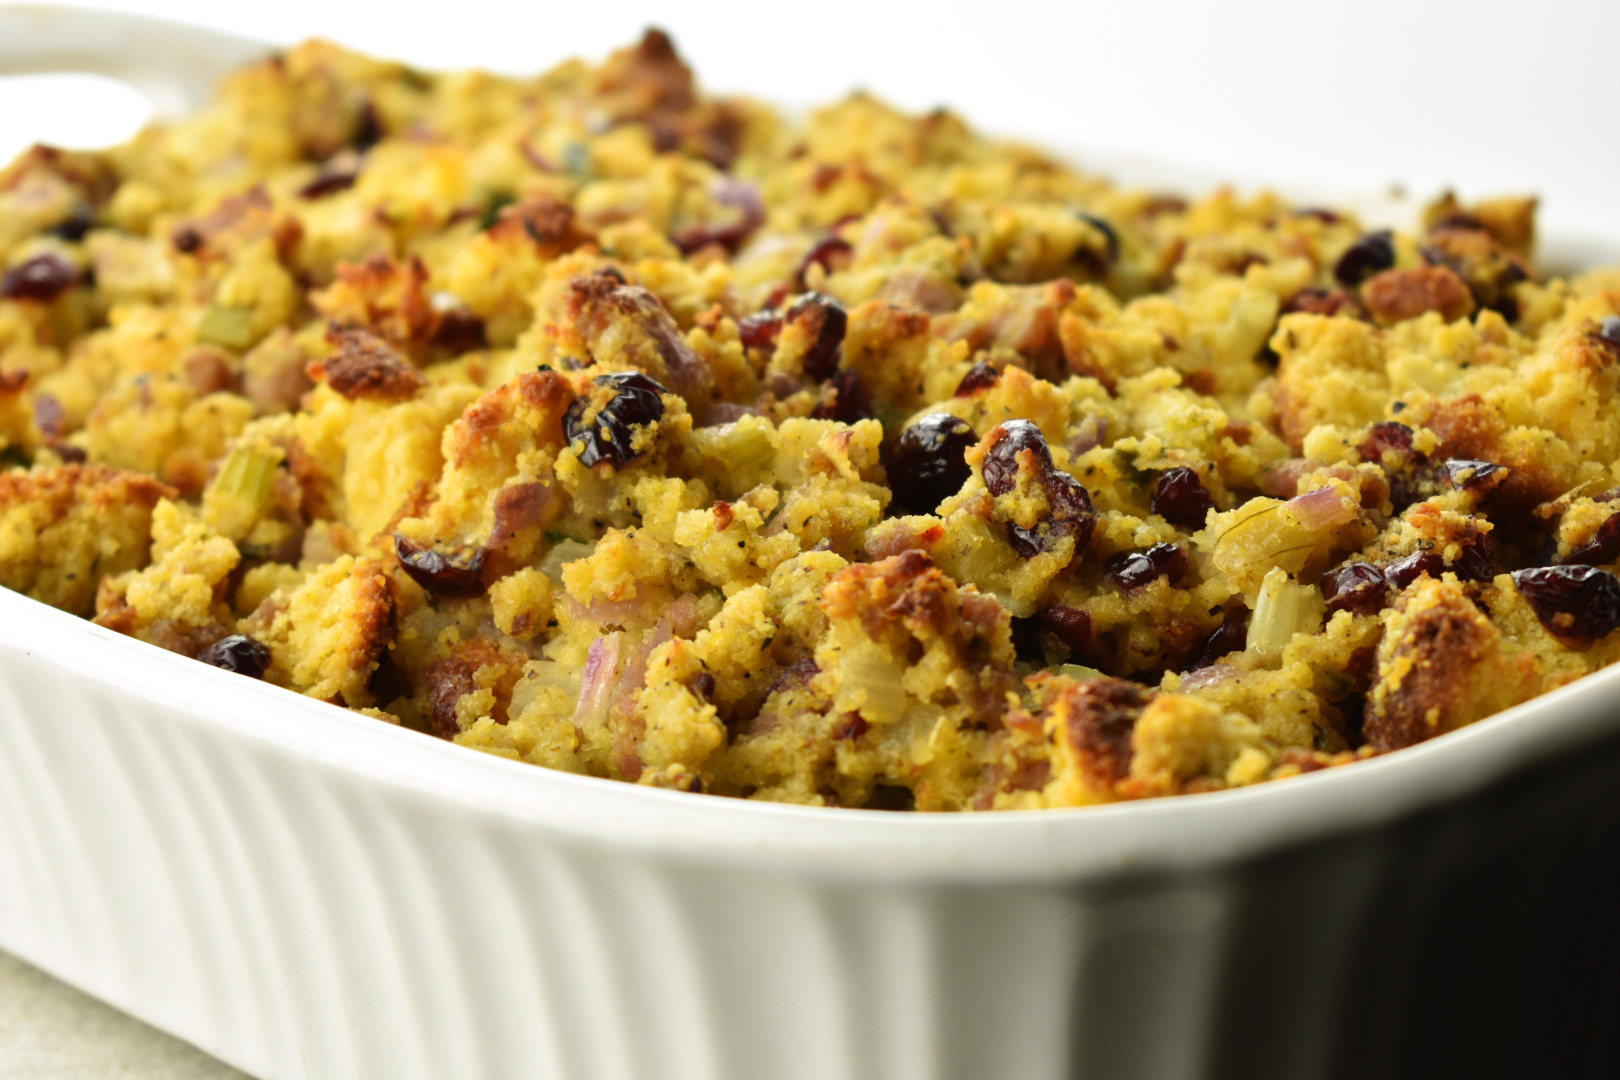 Jalapeno Cornbread Stuffing with Sausage and Dried Cranberries